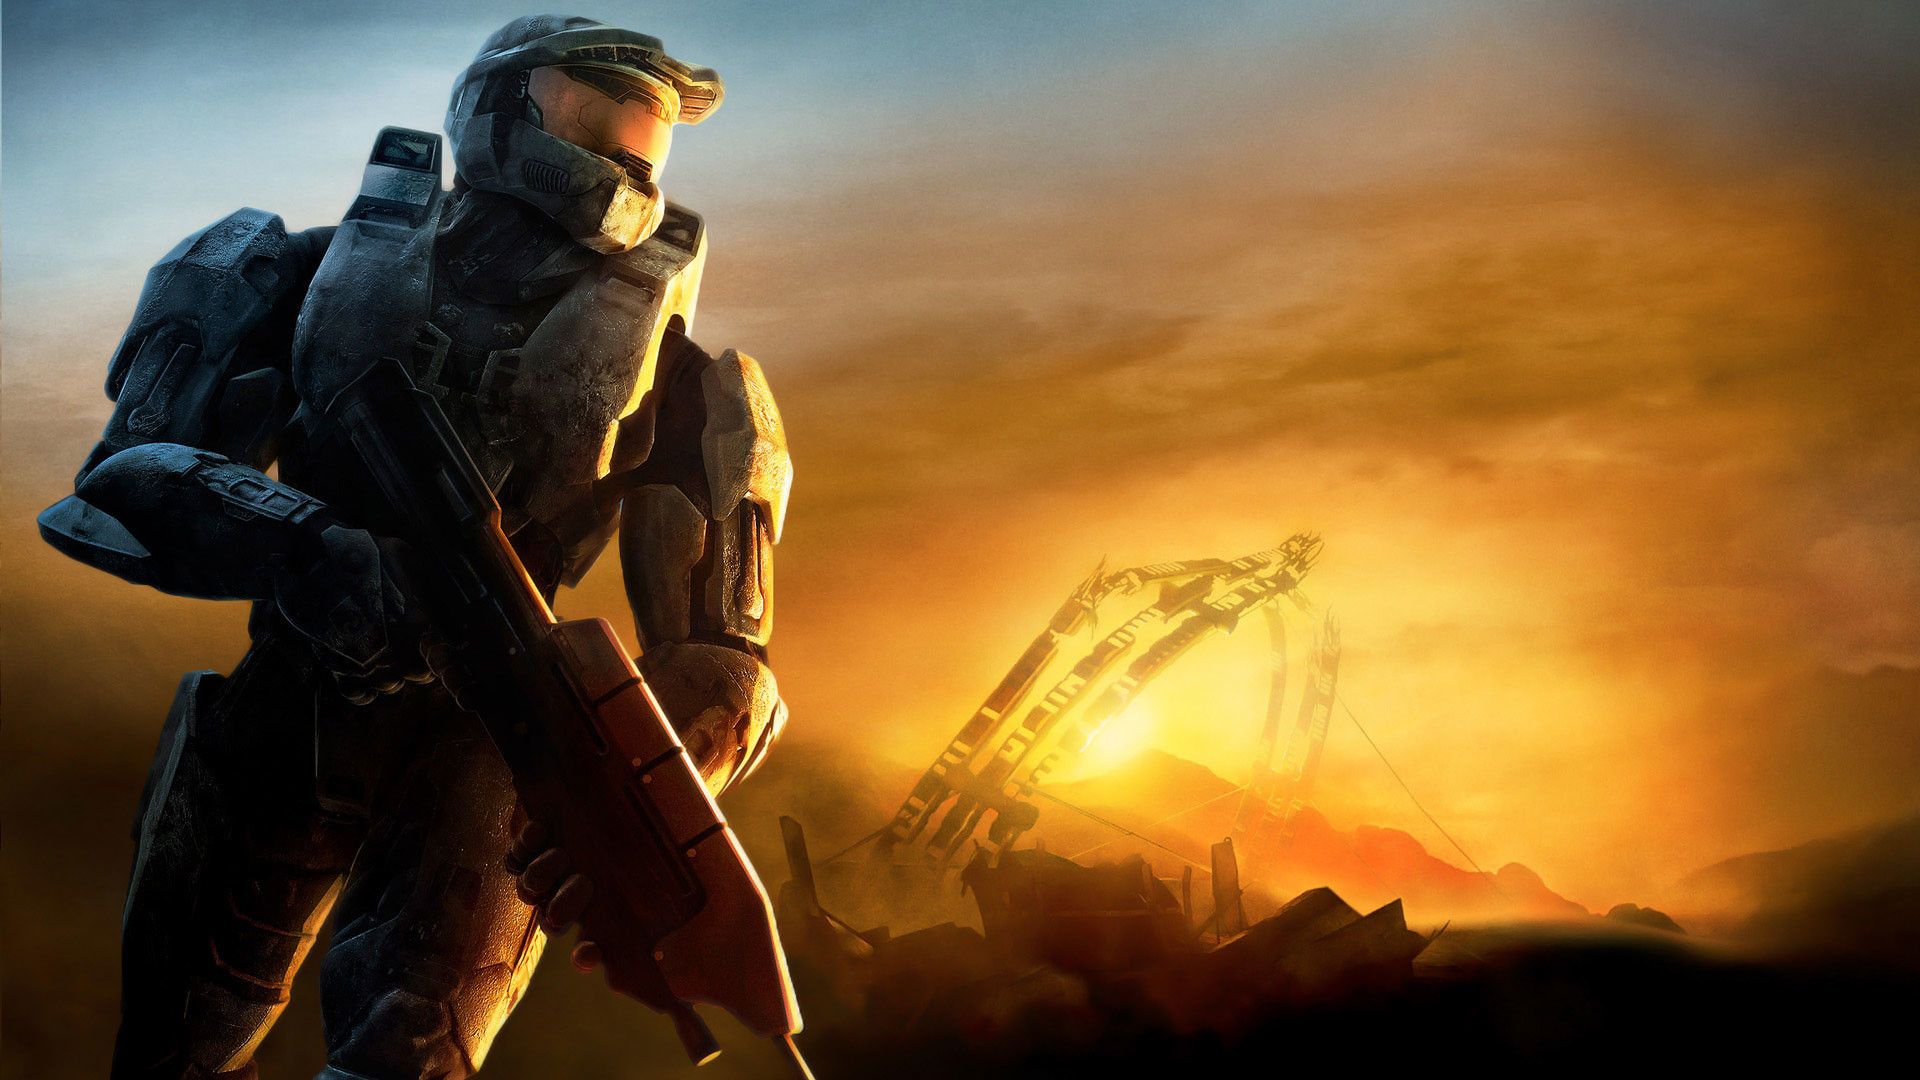 1920x1080 Halo Wallpaper Image Backgrounds 1080p Wallpaper with 1920x1080 .